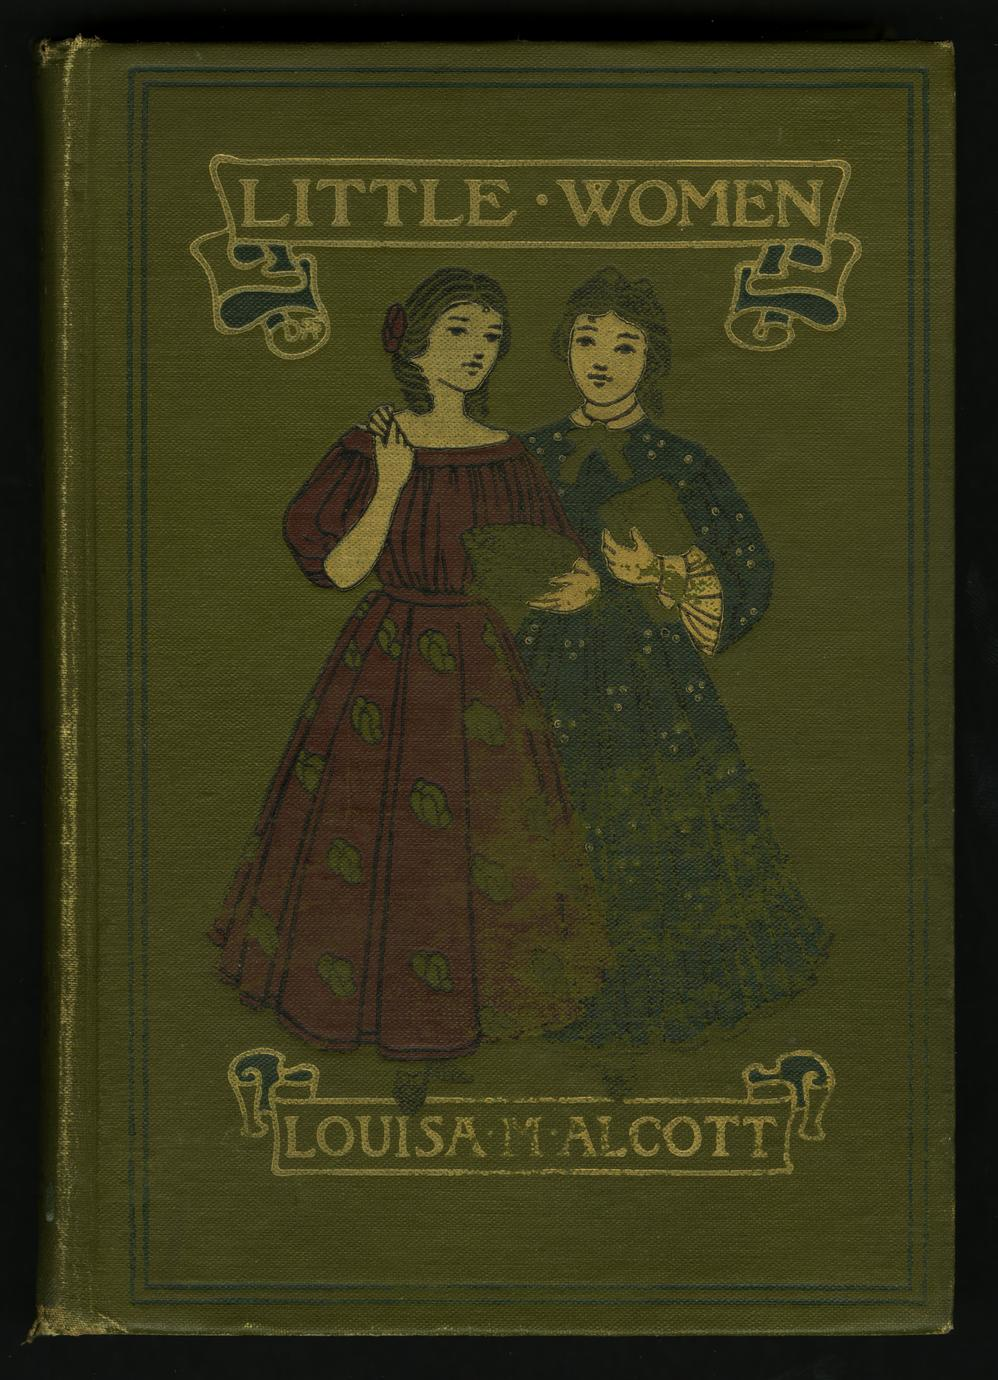 Little women, or, Meg, Jo, Beth, and Amy (1 of 3)